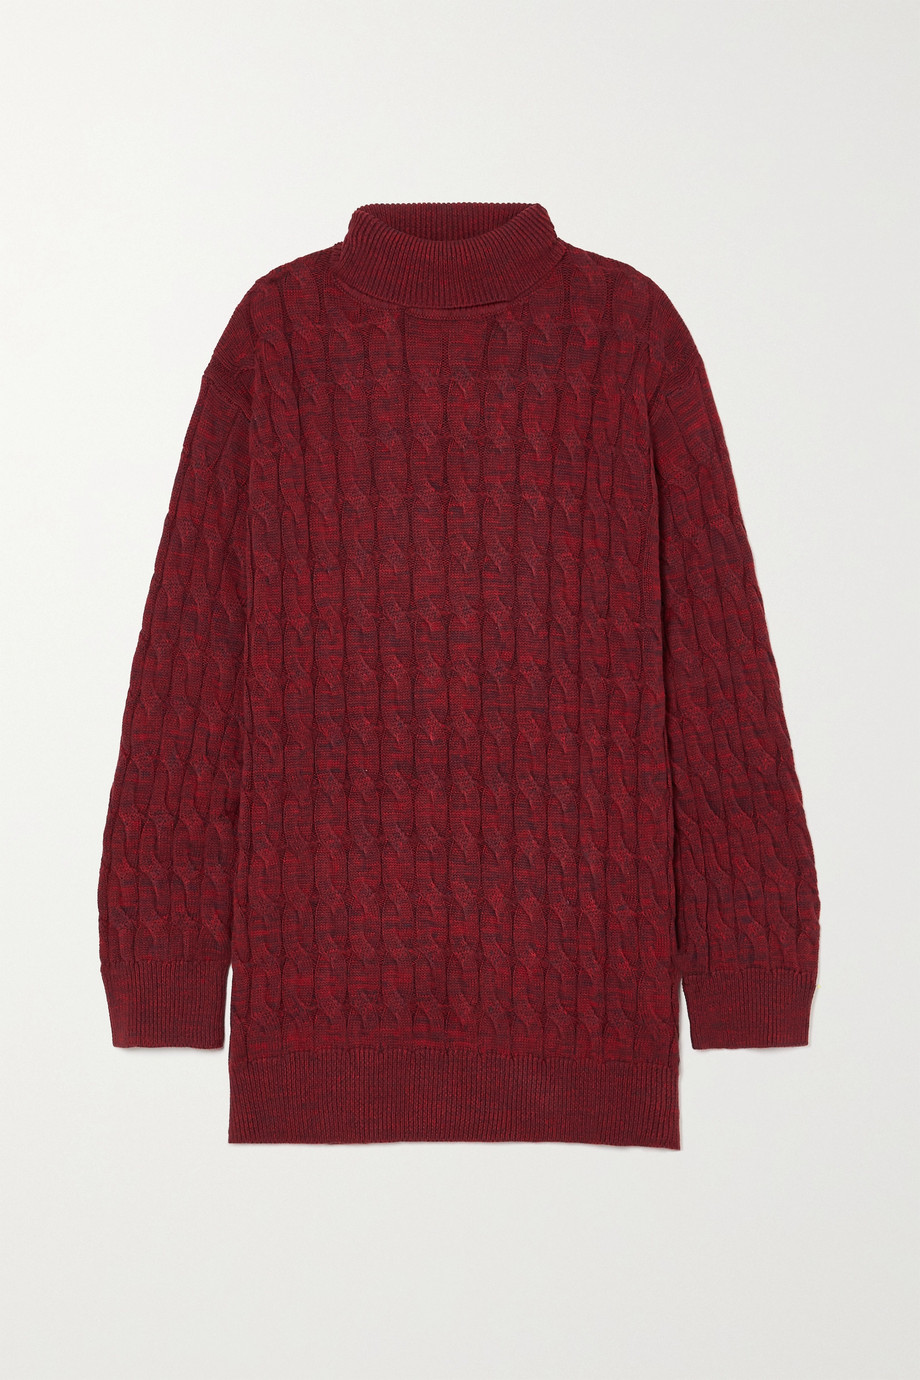 ANNA QUAN Dante cable-knit wool sweater